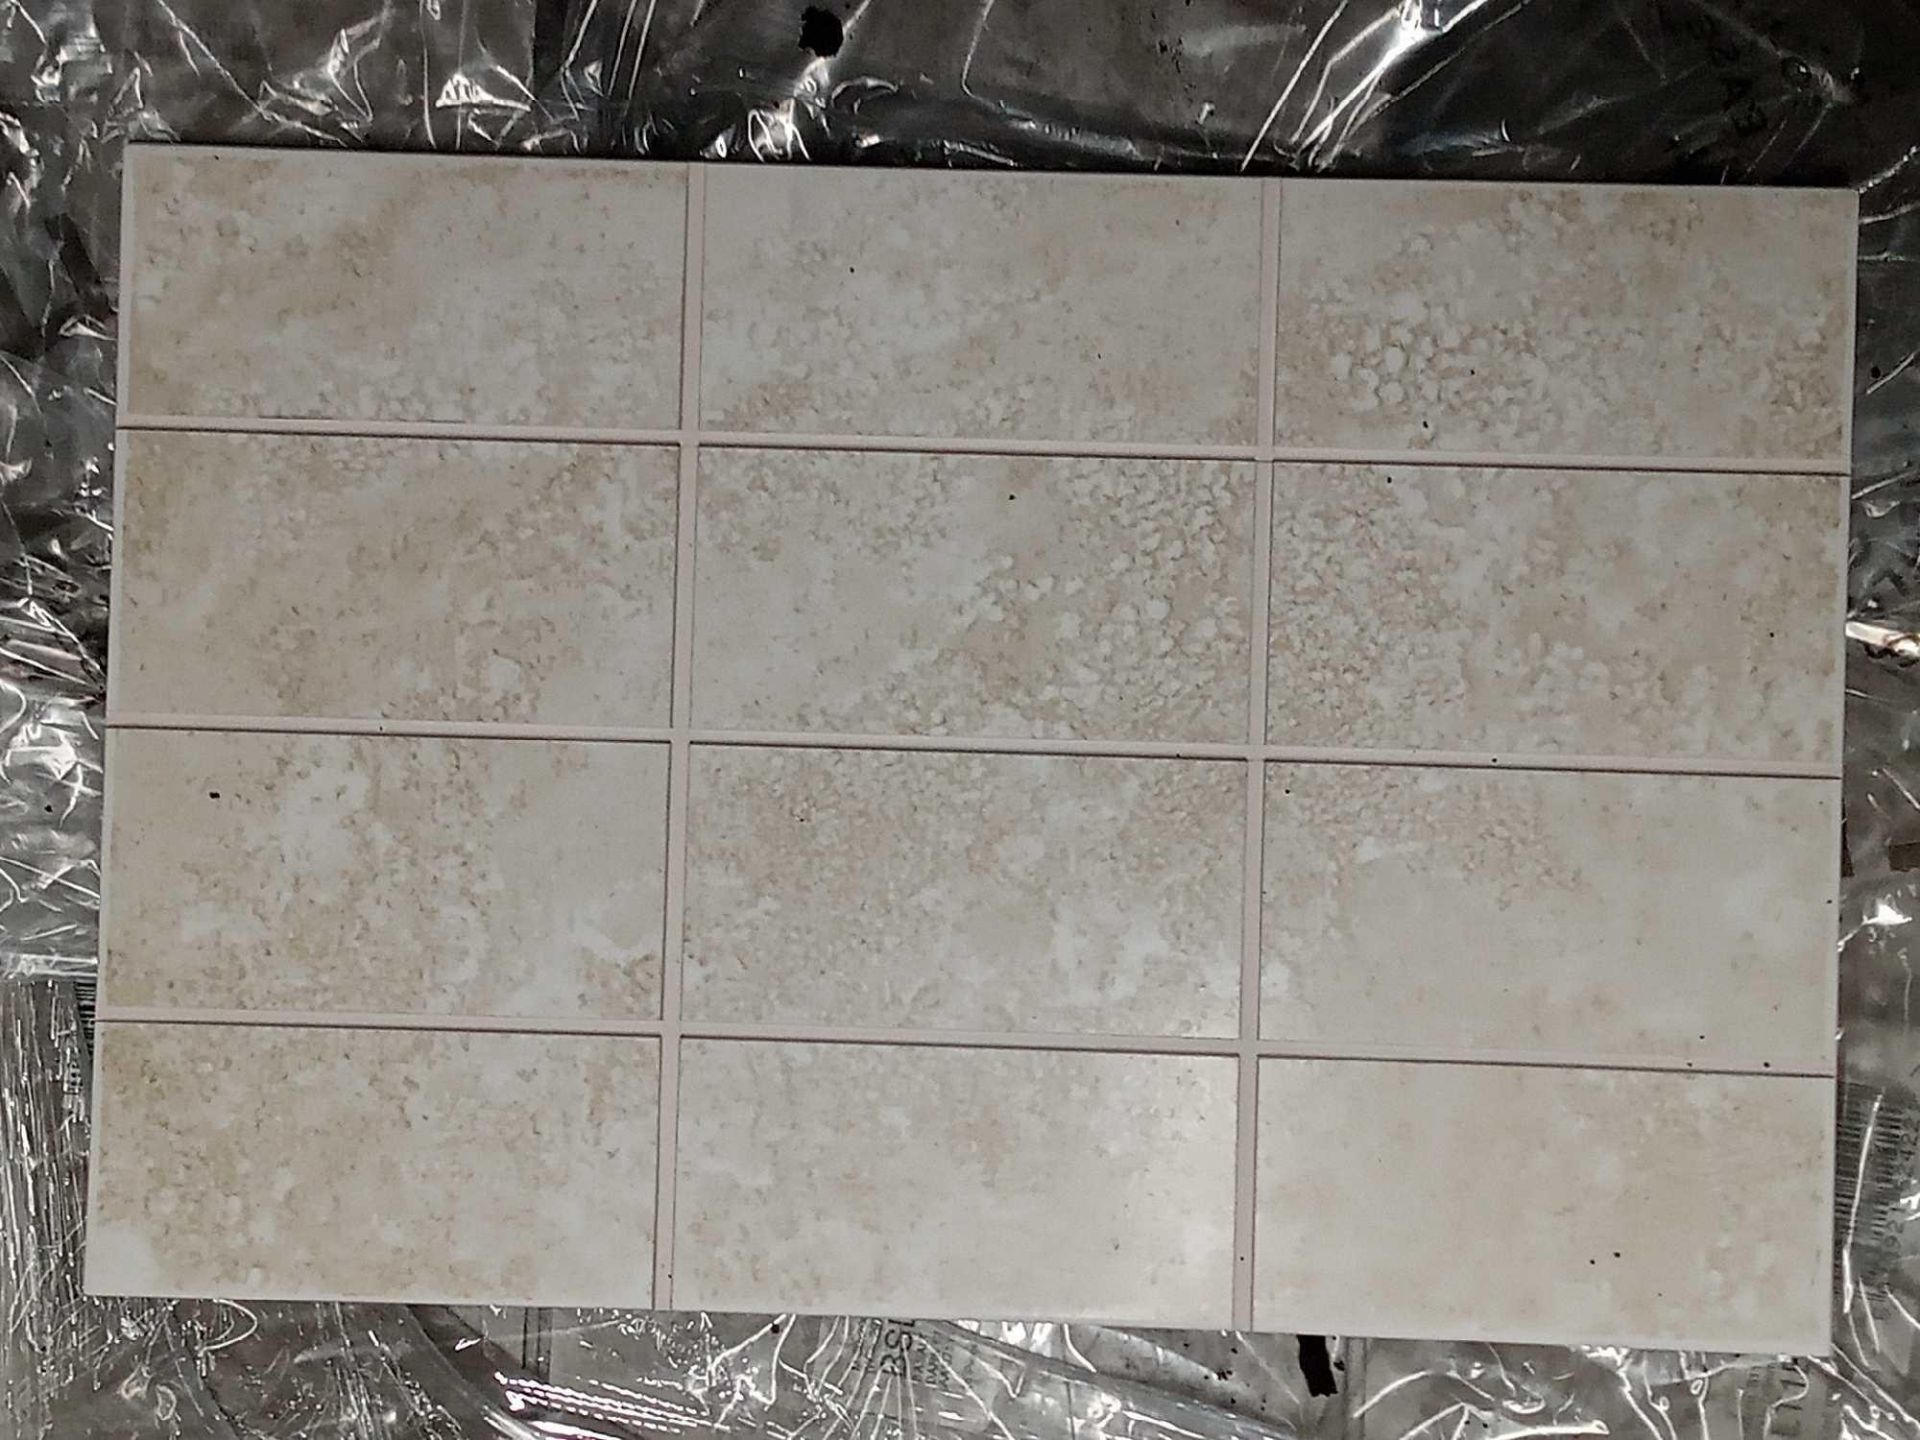 RRP £660 Pallet To Contain 66 Brand New Packs Of 15 Johnson's Shle1F Shale 2 Way Scored Tiles (